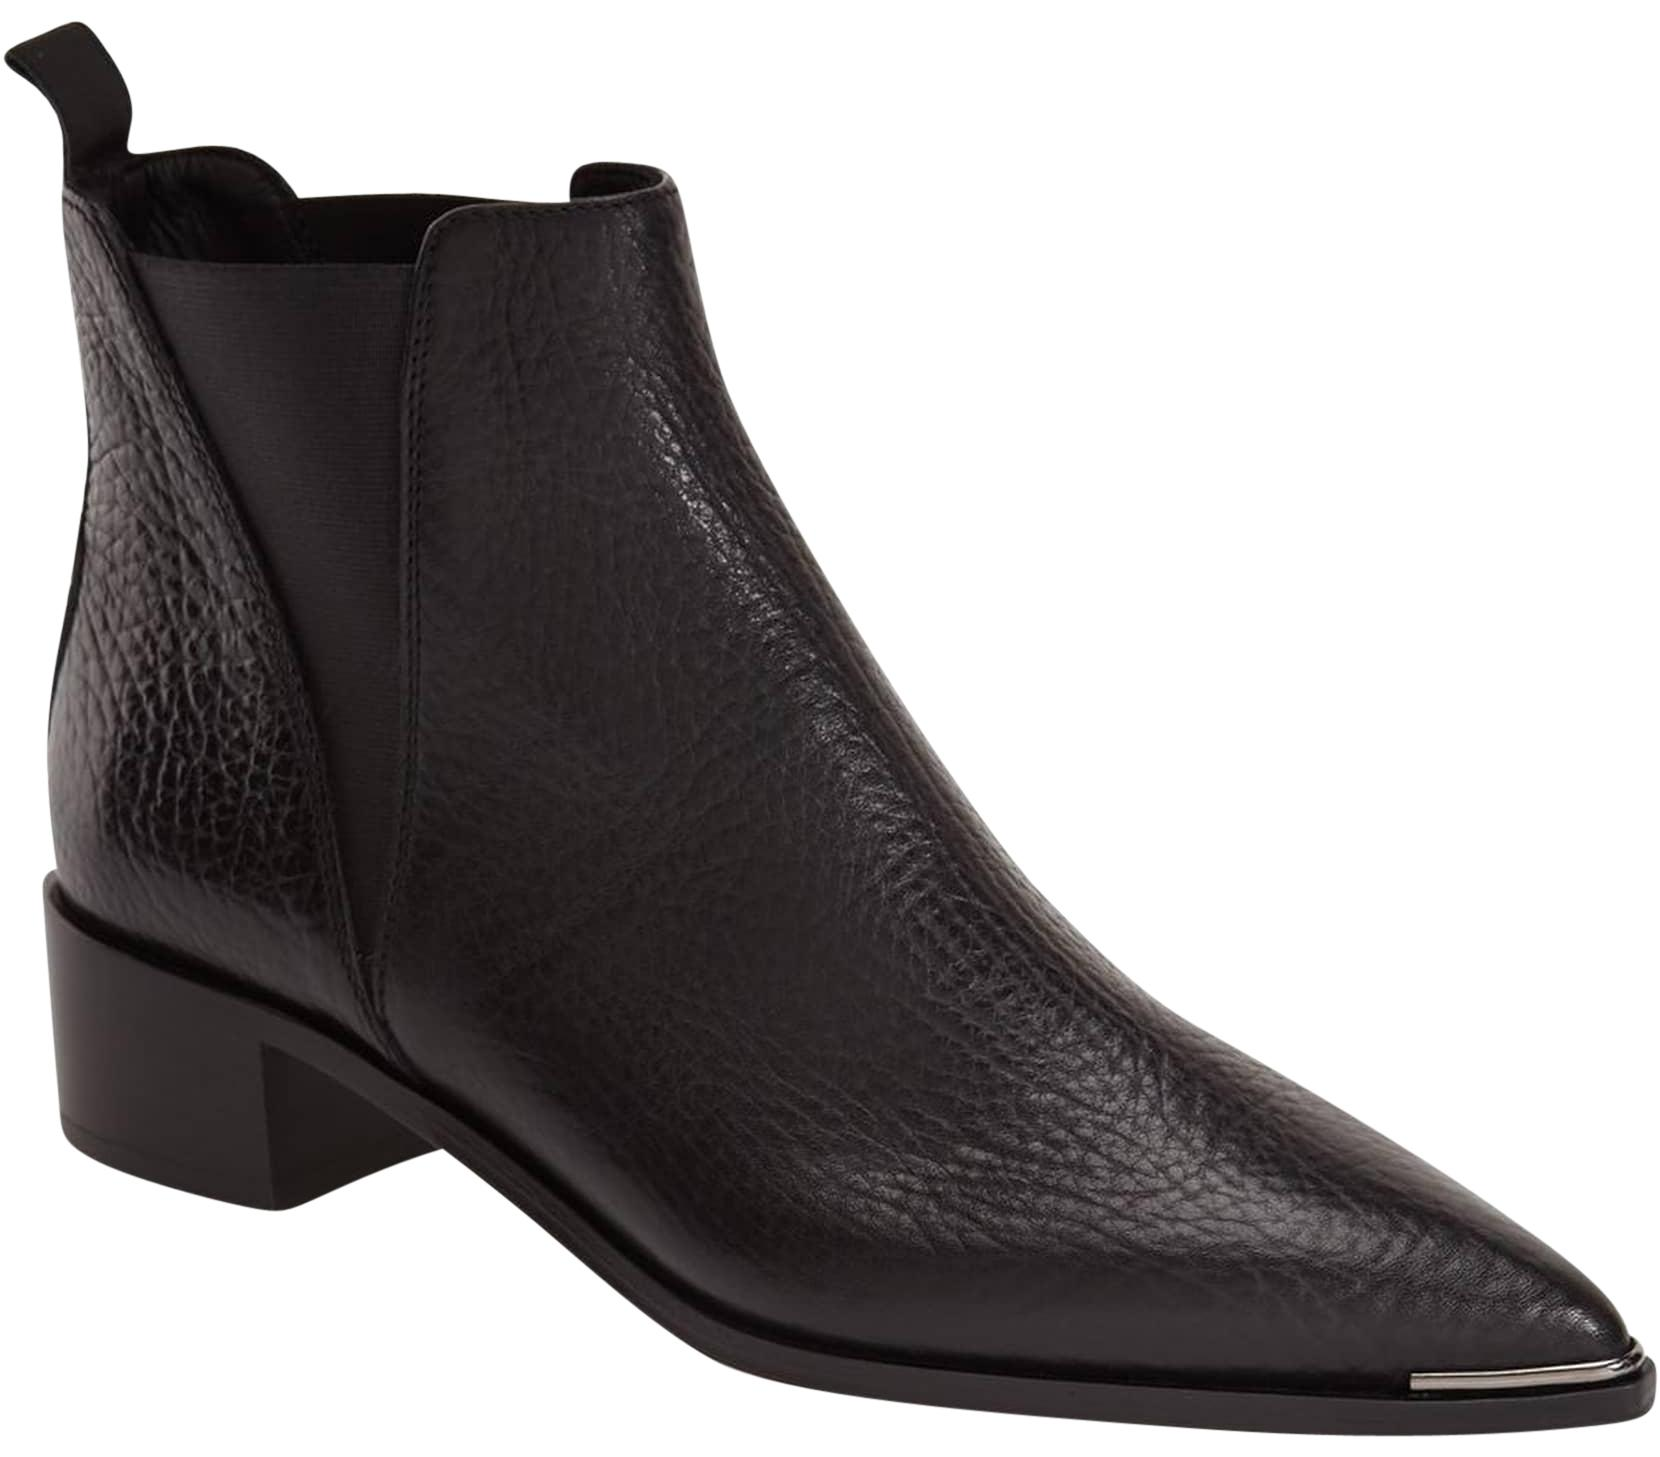 Acne Studios Black Jensen Leather Ankle Pointy 37 Boots/Booties Size US 7 Regular (M, B)